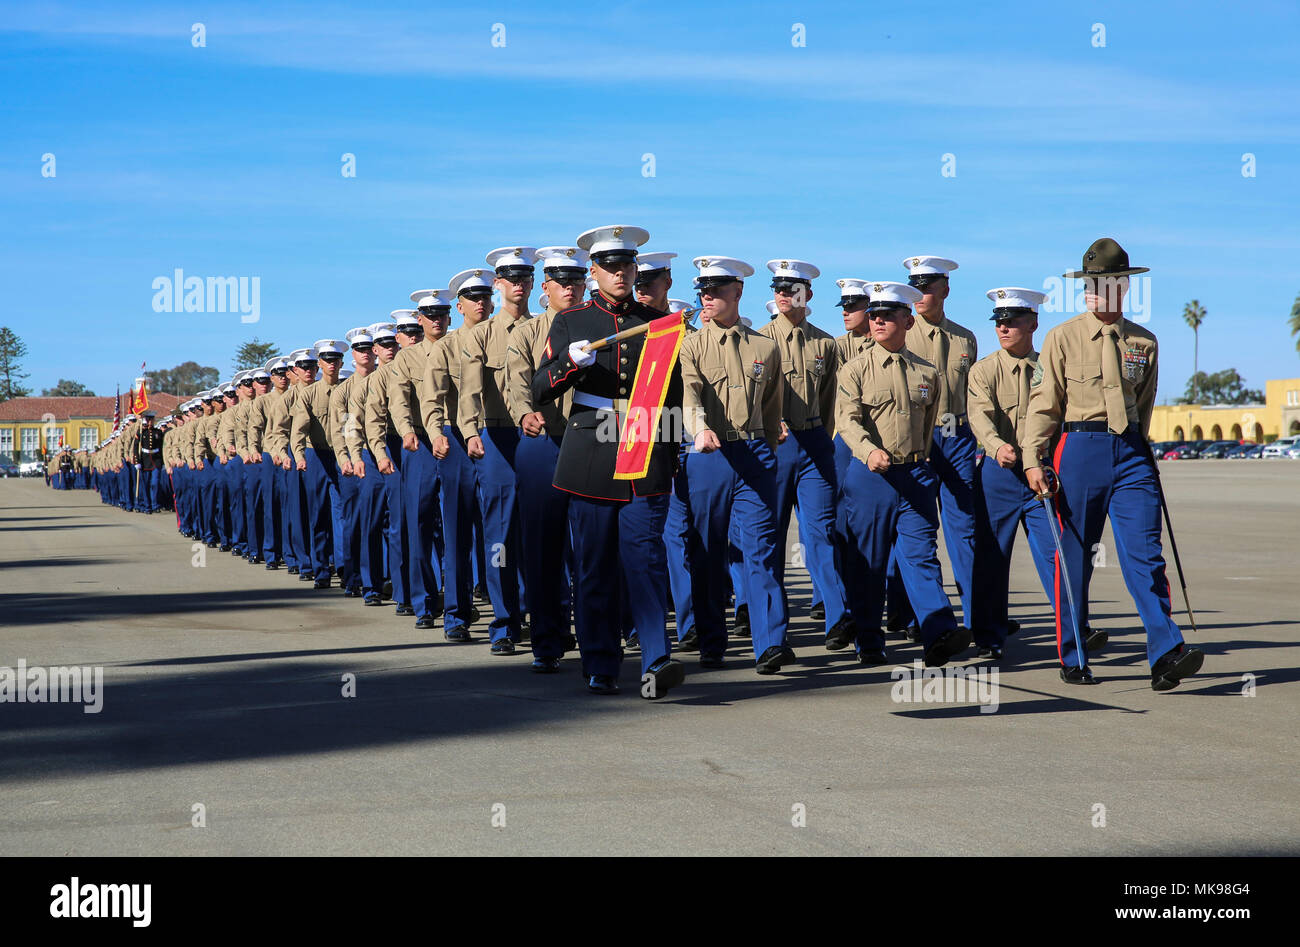 Marines With Golf Company 2nd Recruit Training Battalion March As A Company For The Last Time On Graduation Day At Marine Corps Recruit Depot San Diego Today Graduation Takes Place At The